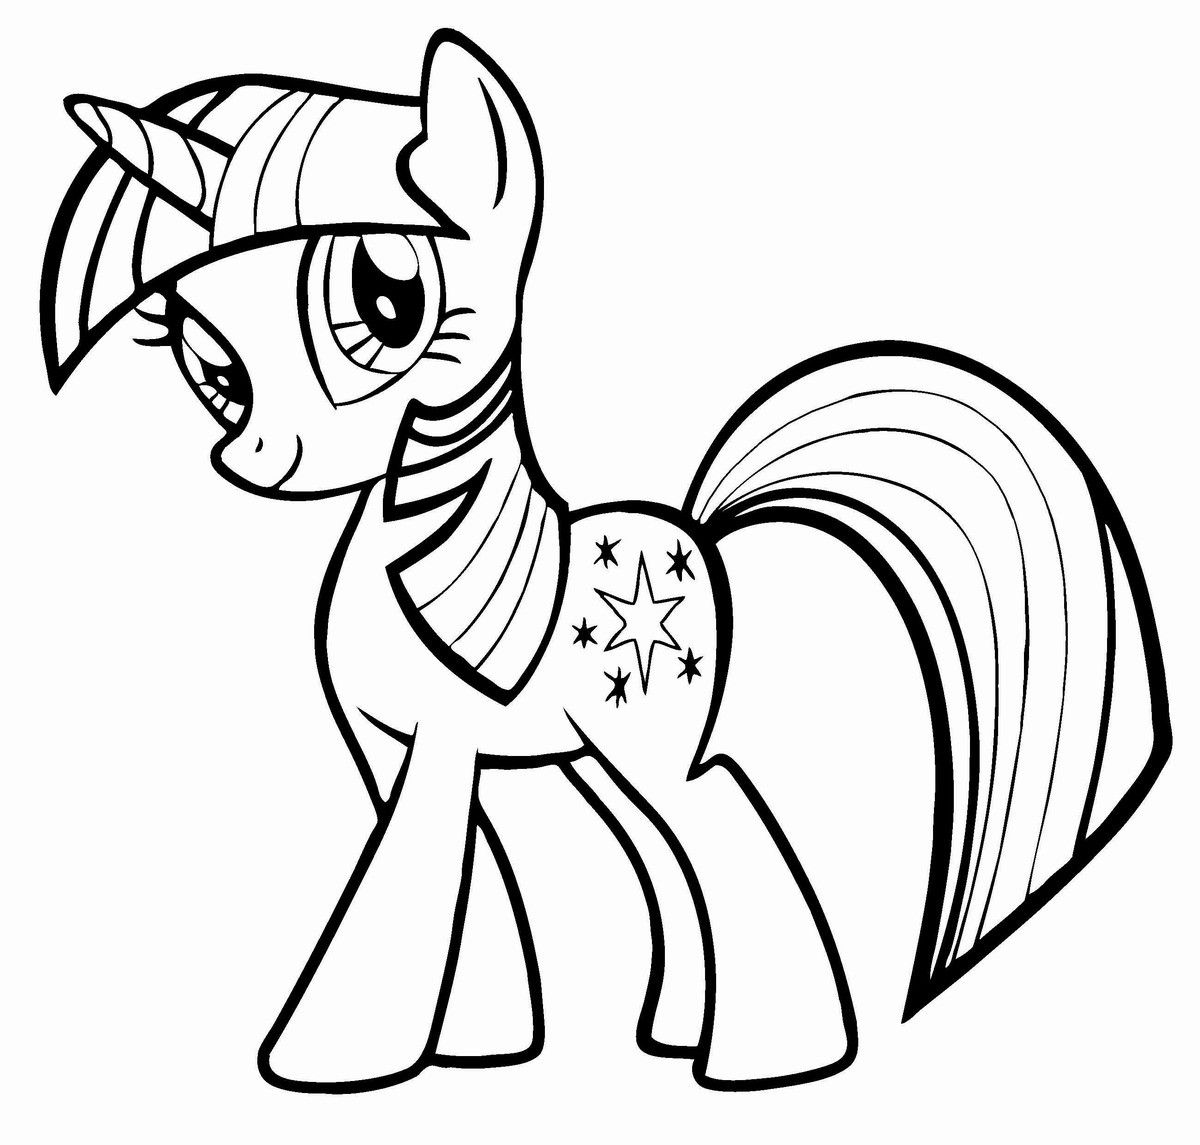 Printable My Little Pony Coloring Sheets Through The Thousand Pictures On The Web With My Little Pony Drawing My Little Pony Coloring My Little Pony Twilight